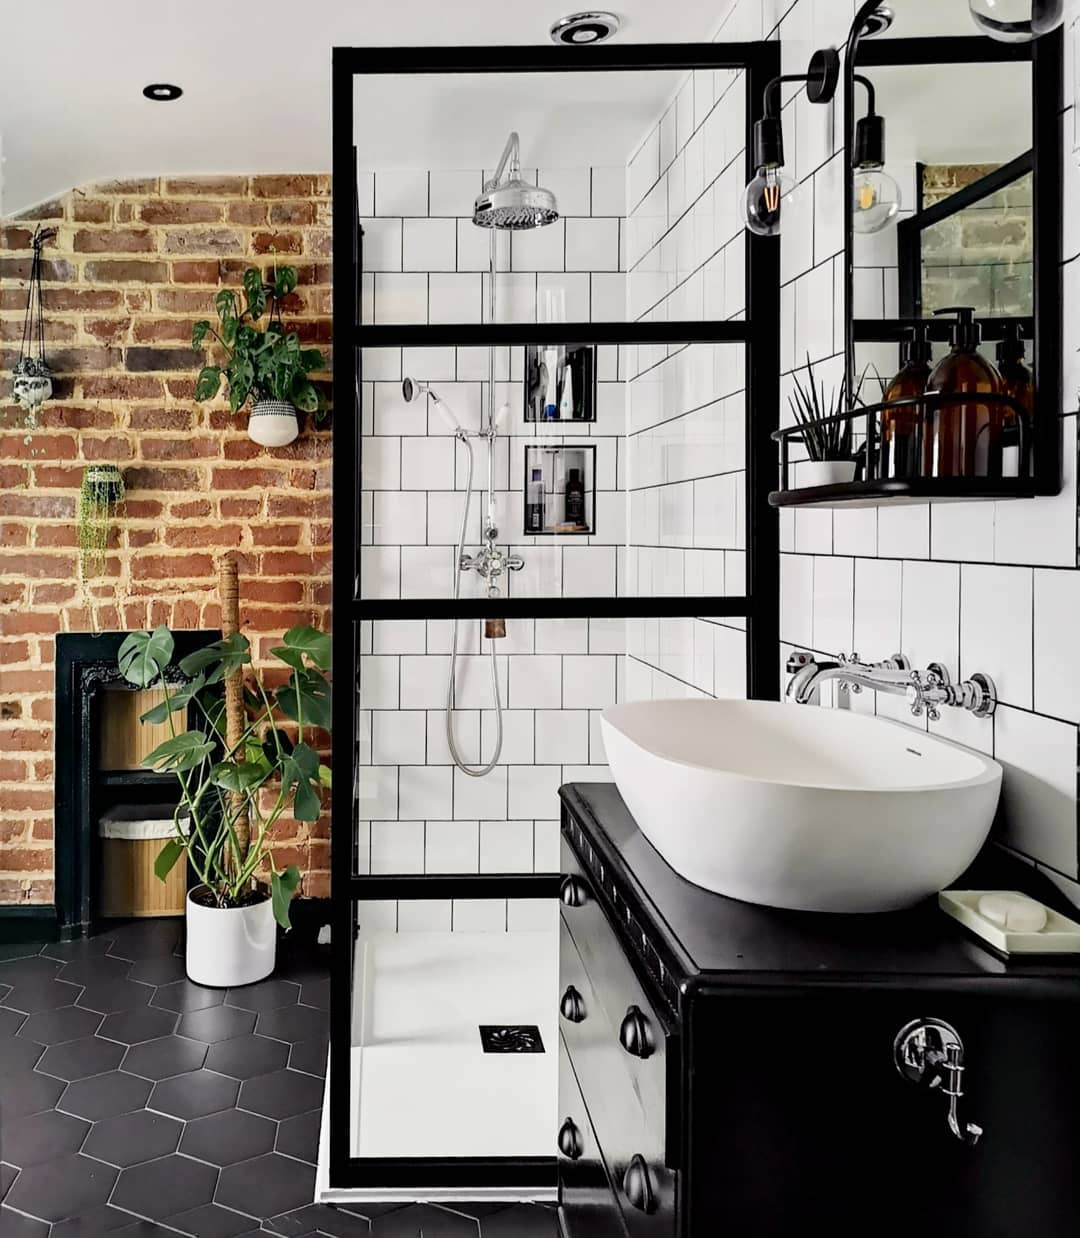 Bathroom with white tiles